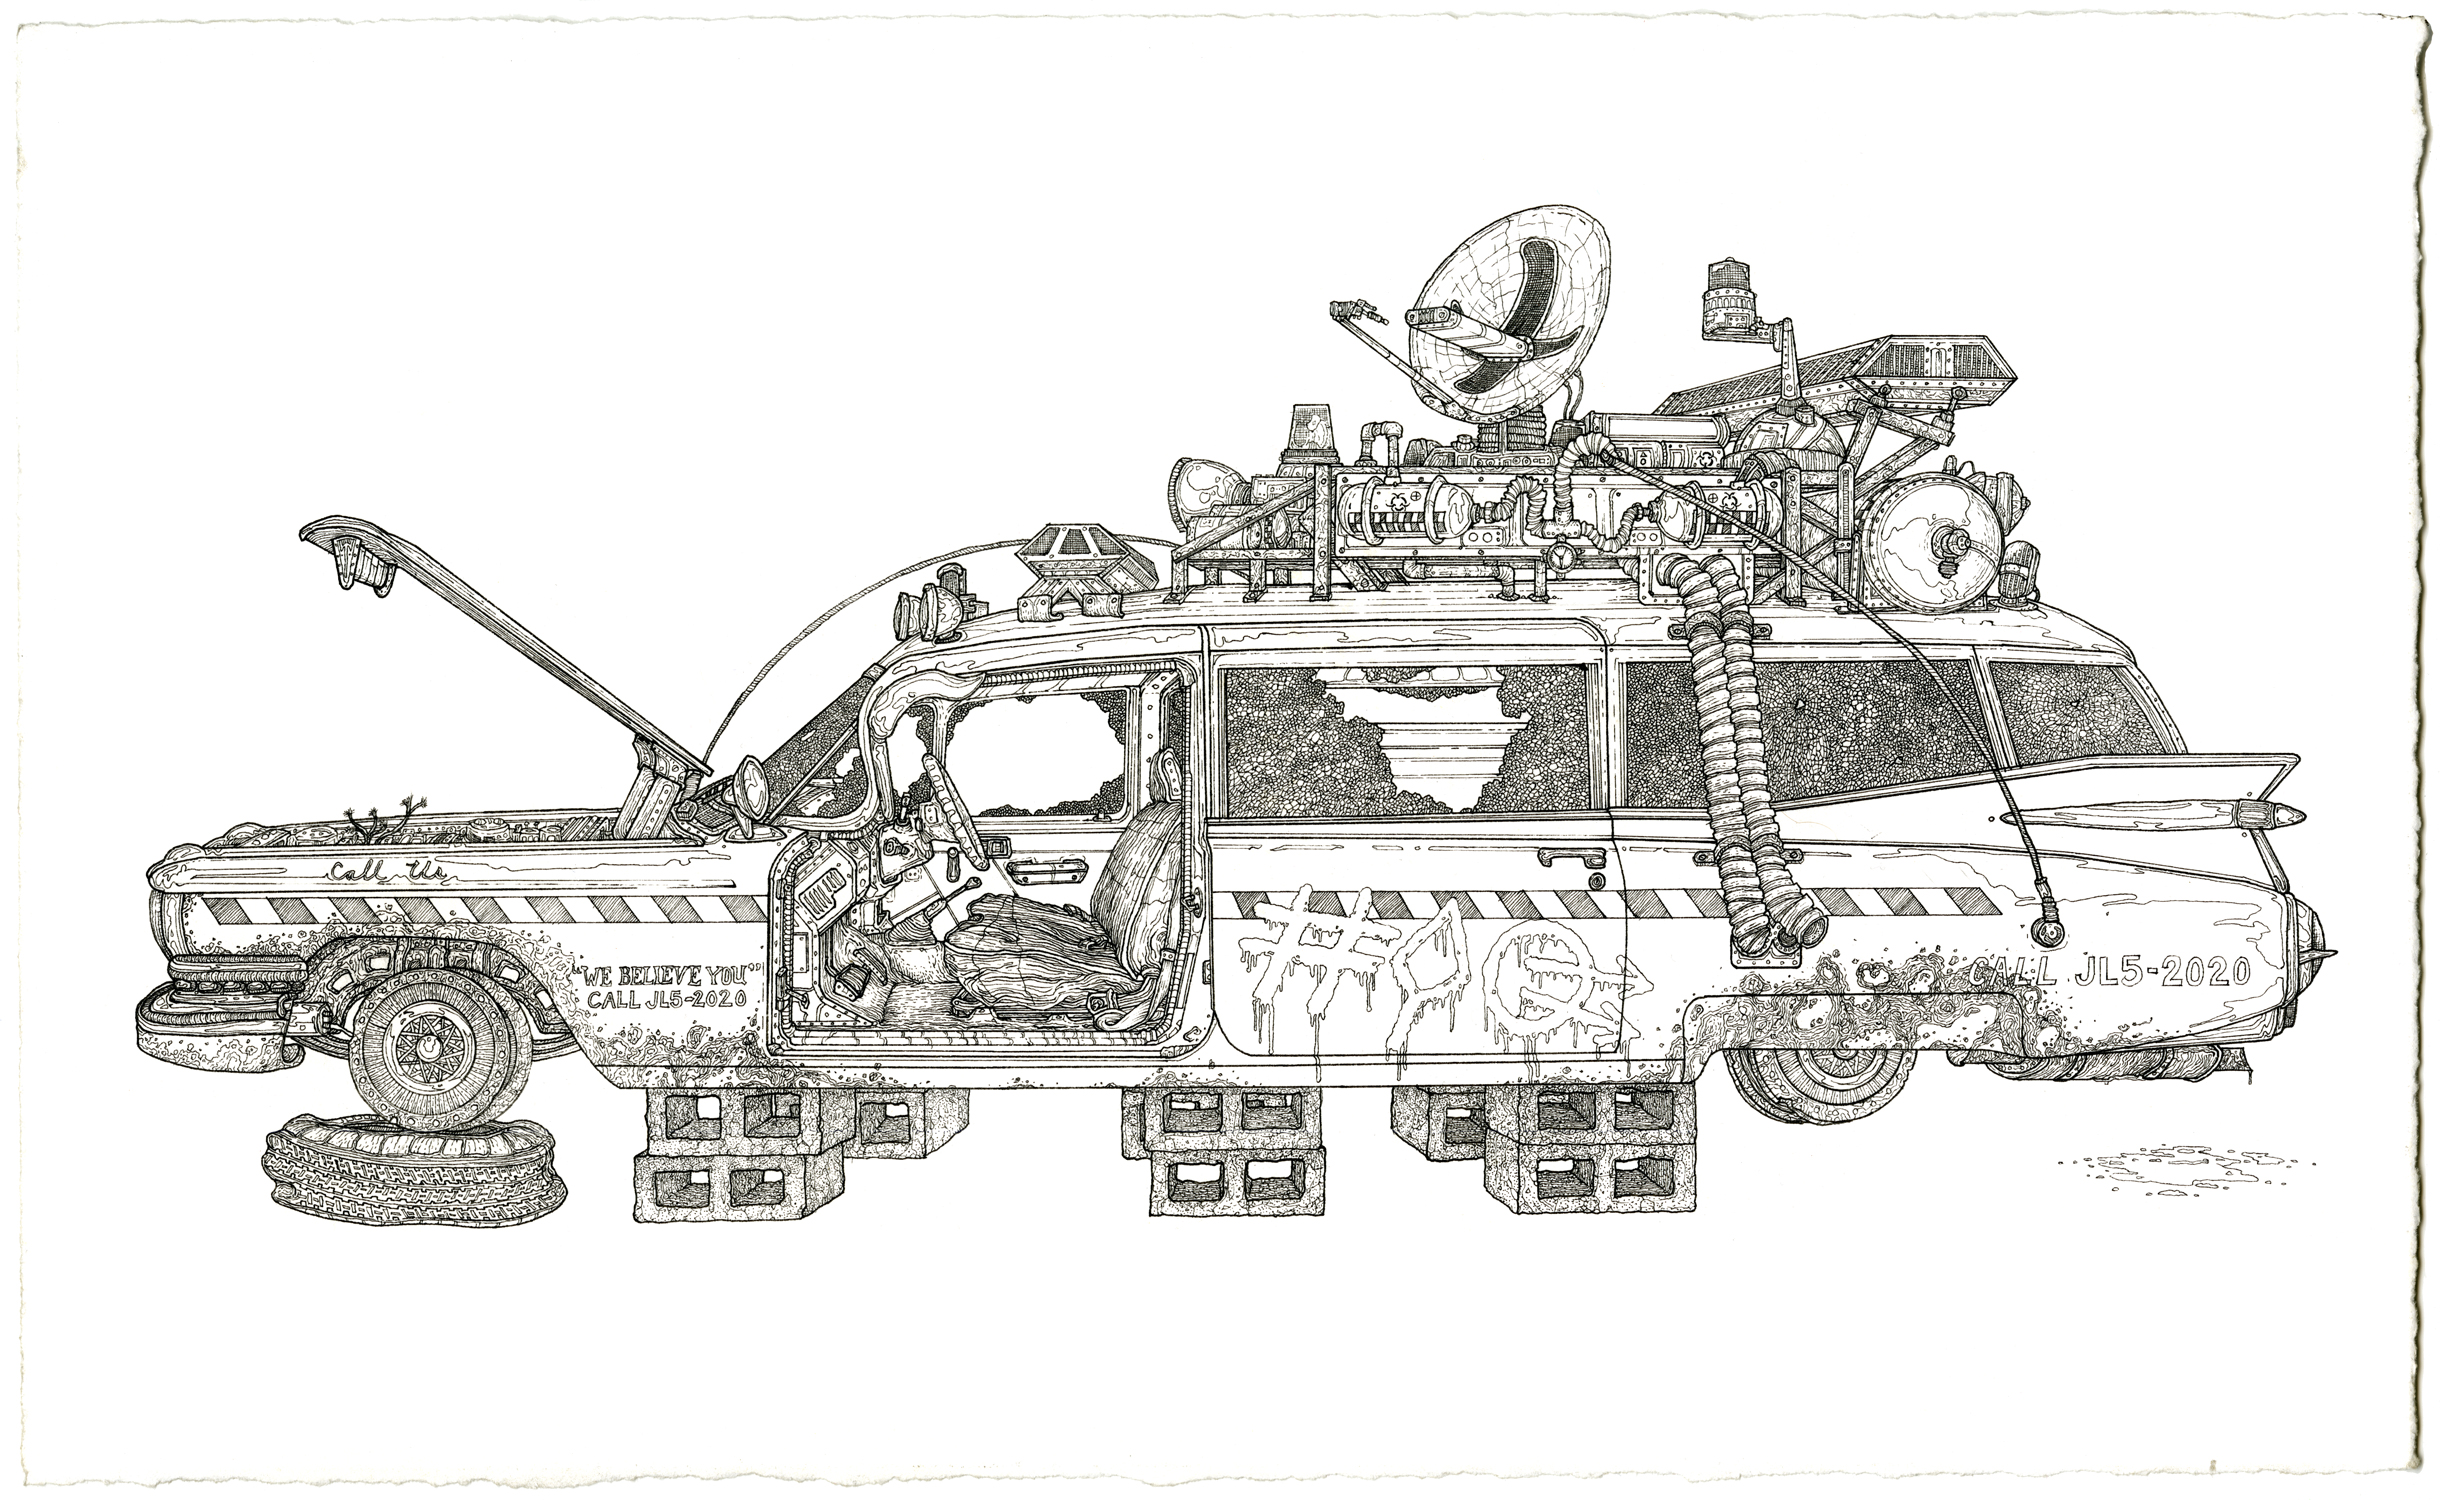 ecto 1 , ink on paper, 8.5in. x 14in., 2009